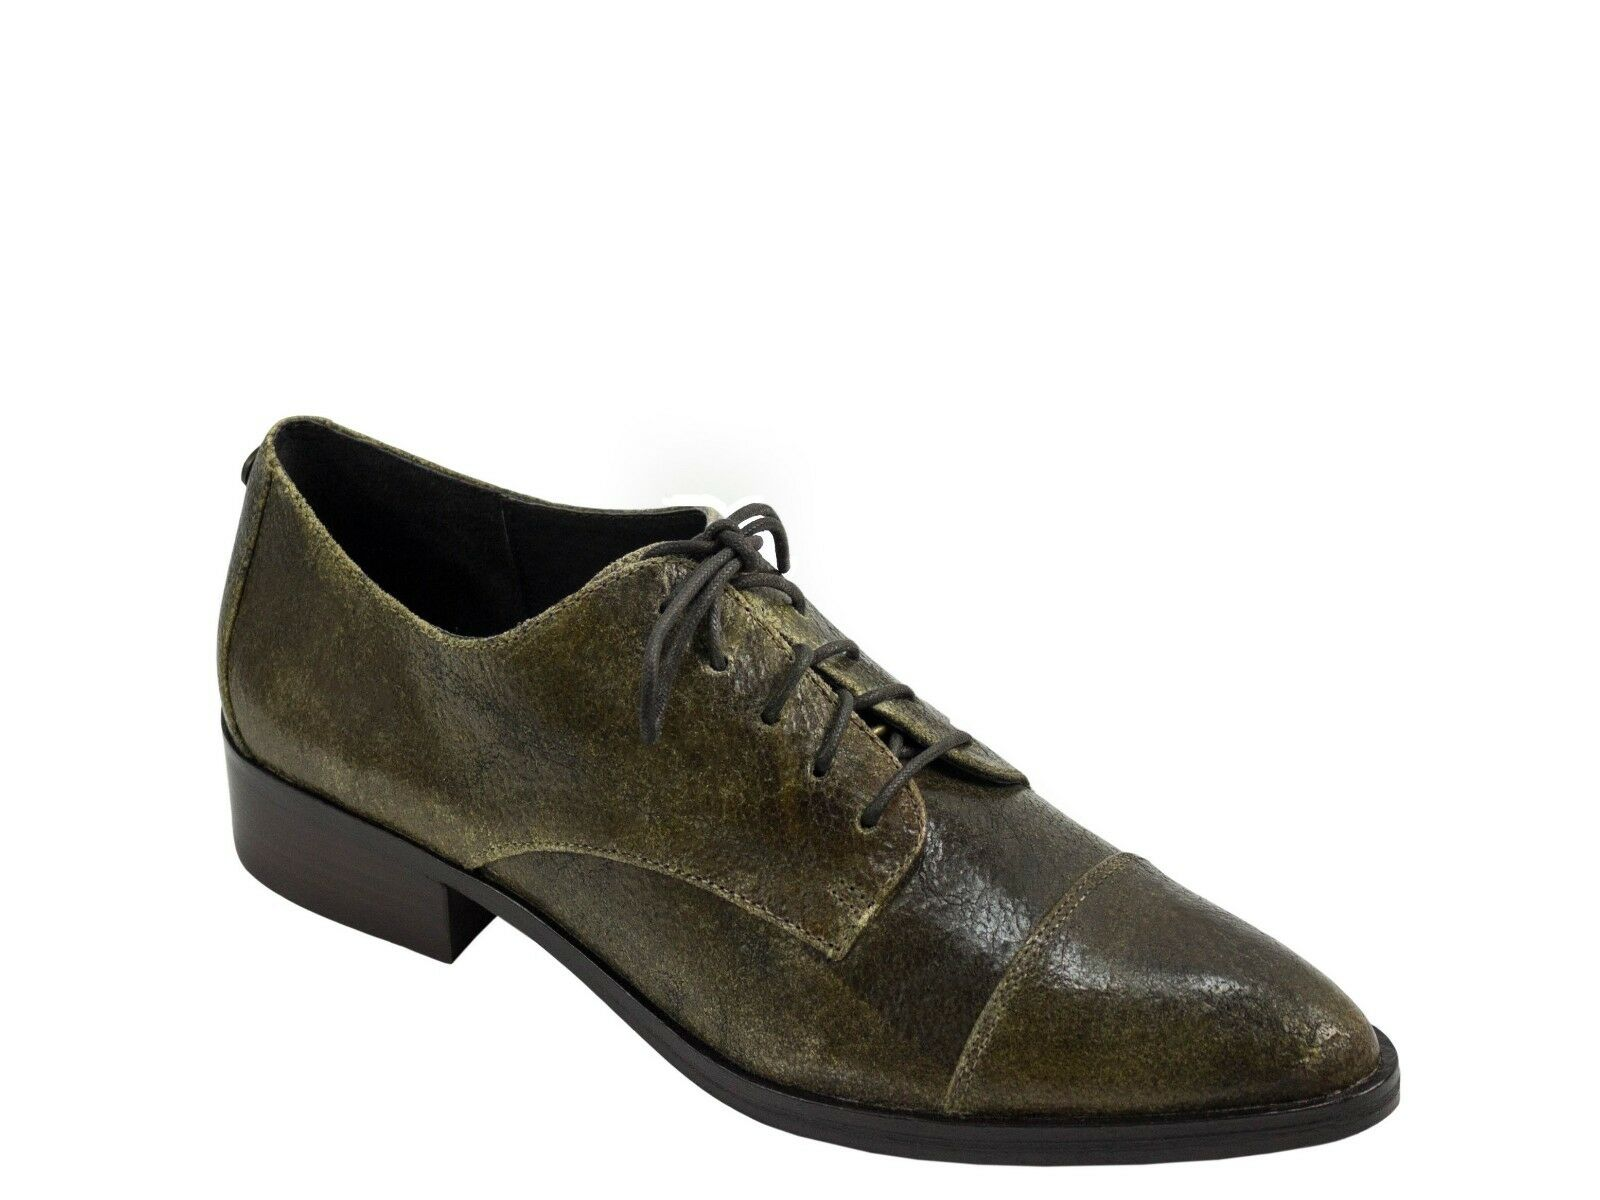 Donald Donald Donald J Pliner Gea Gea Pliner Pelle Olive Lace Up Pointed Cap Toe   f09df1